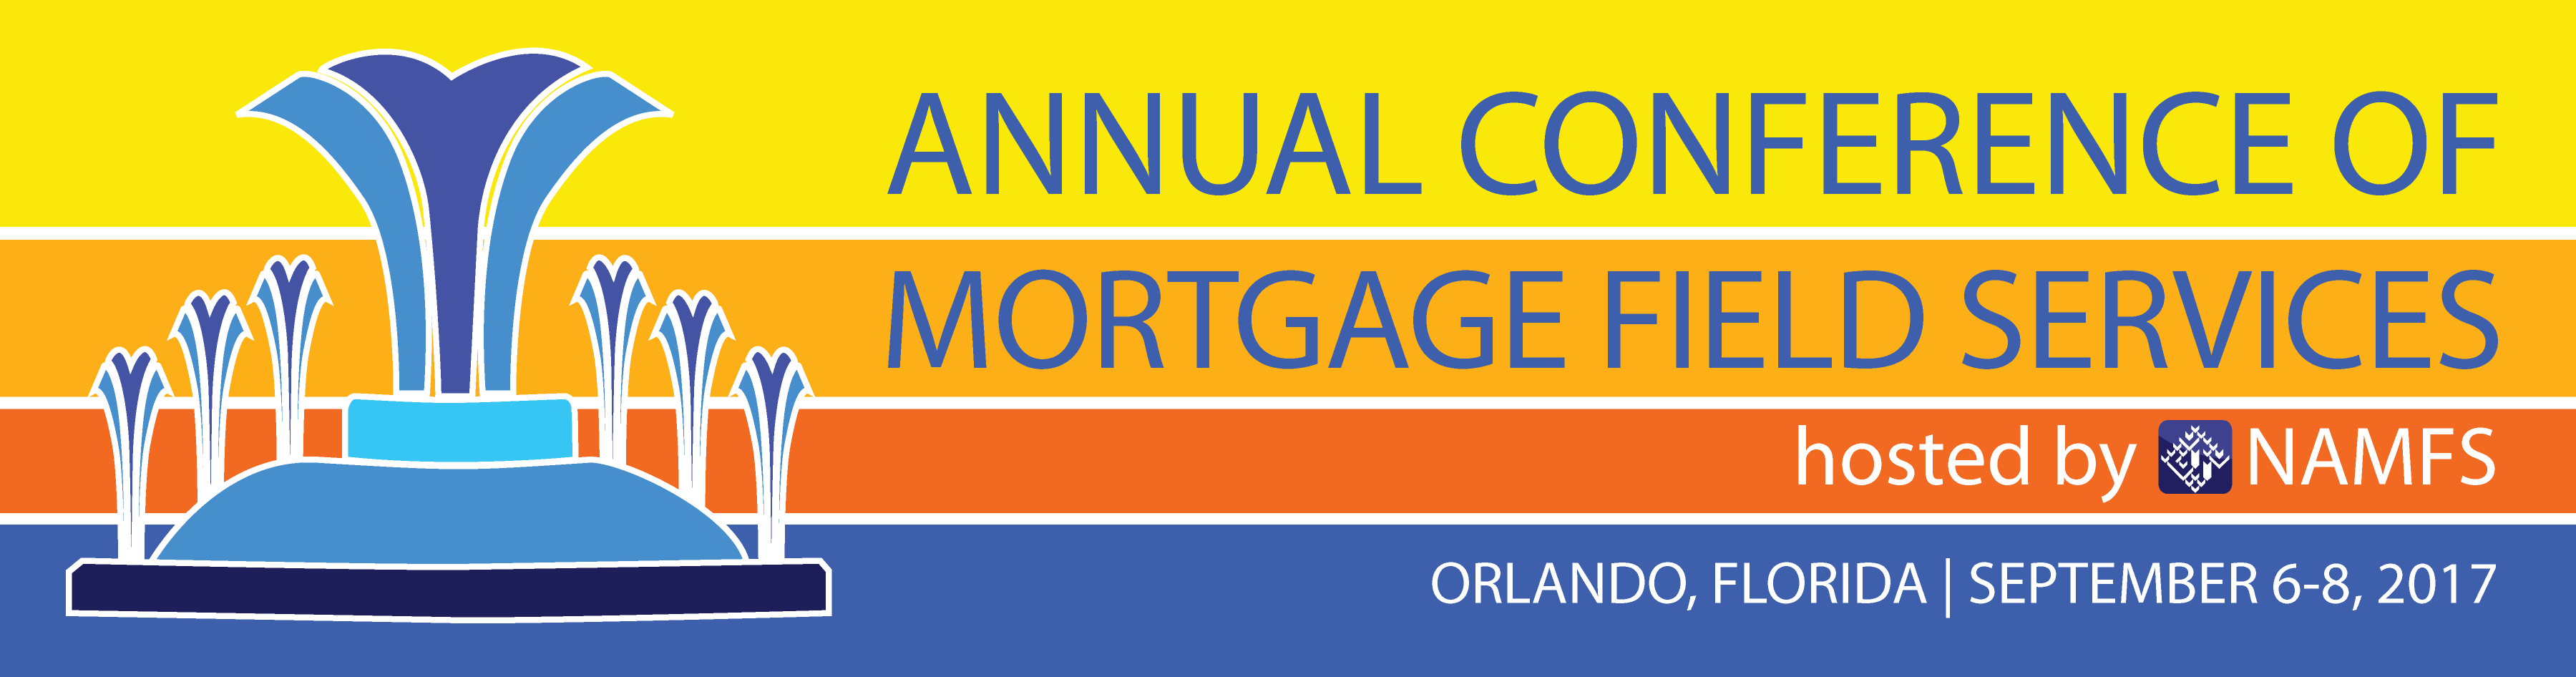 2017 Annual Conference of Mortgage Field Services Hosted by NAMFS